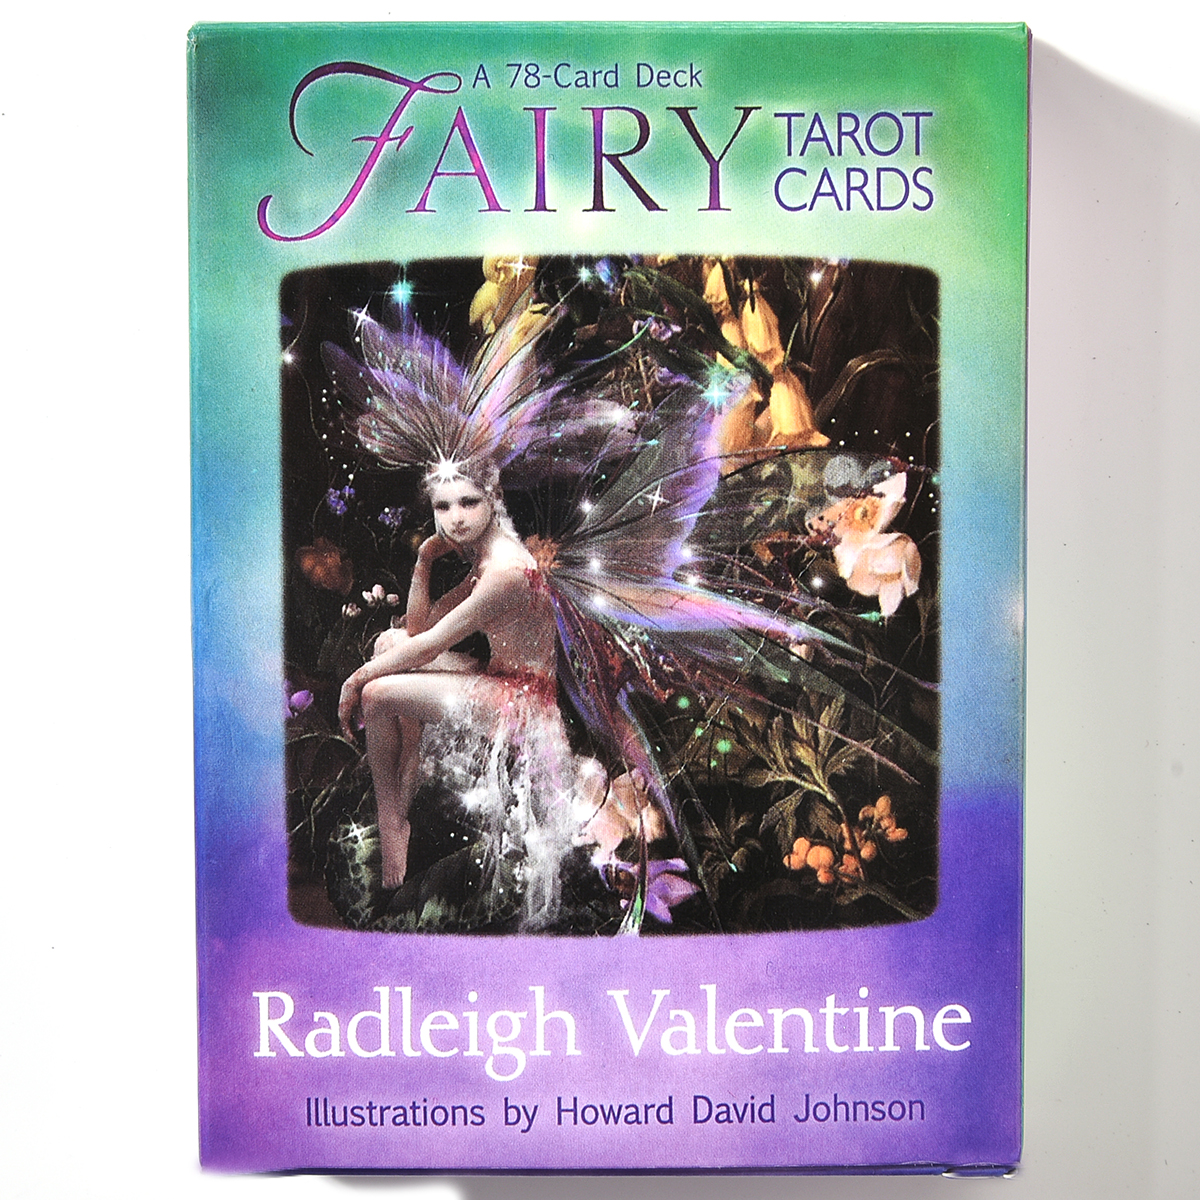 Fairy Tarot Cards A 78 Card Deck Radleigh Valentine Lllustrations High Quality Board Oracle Party Game Divination